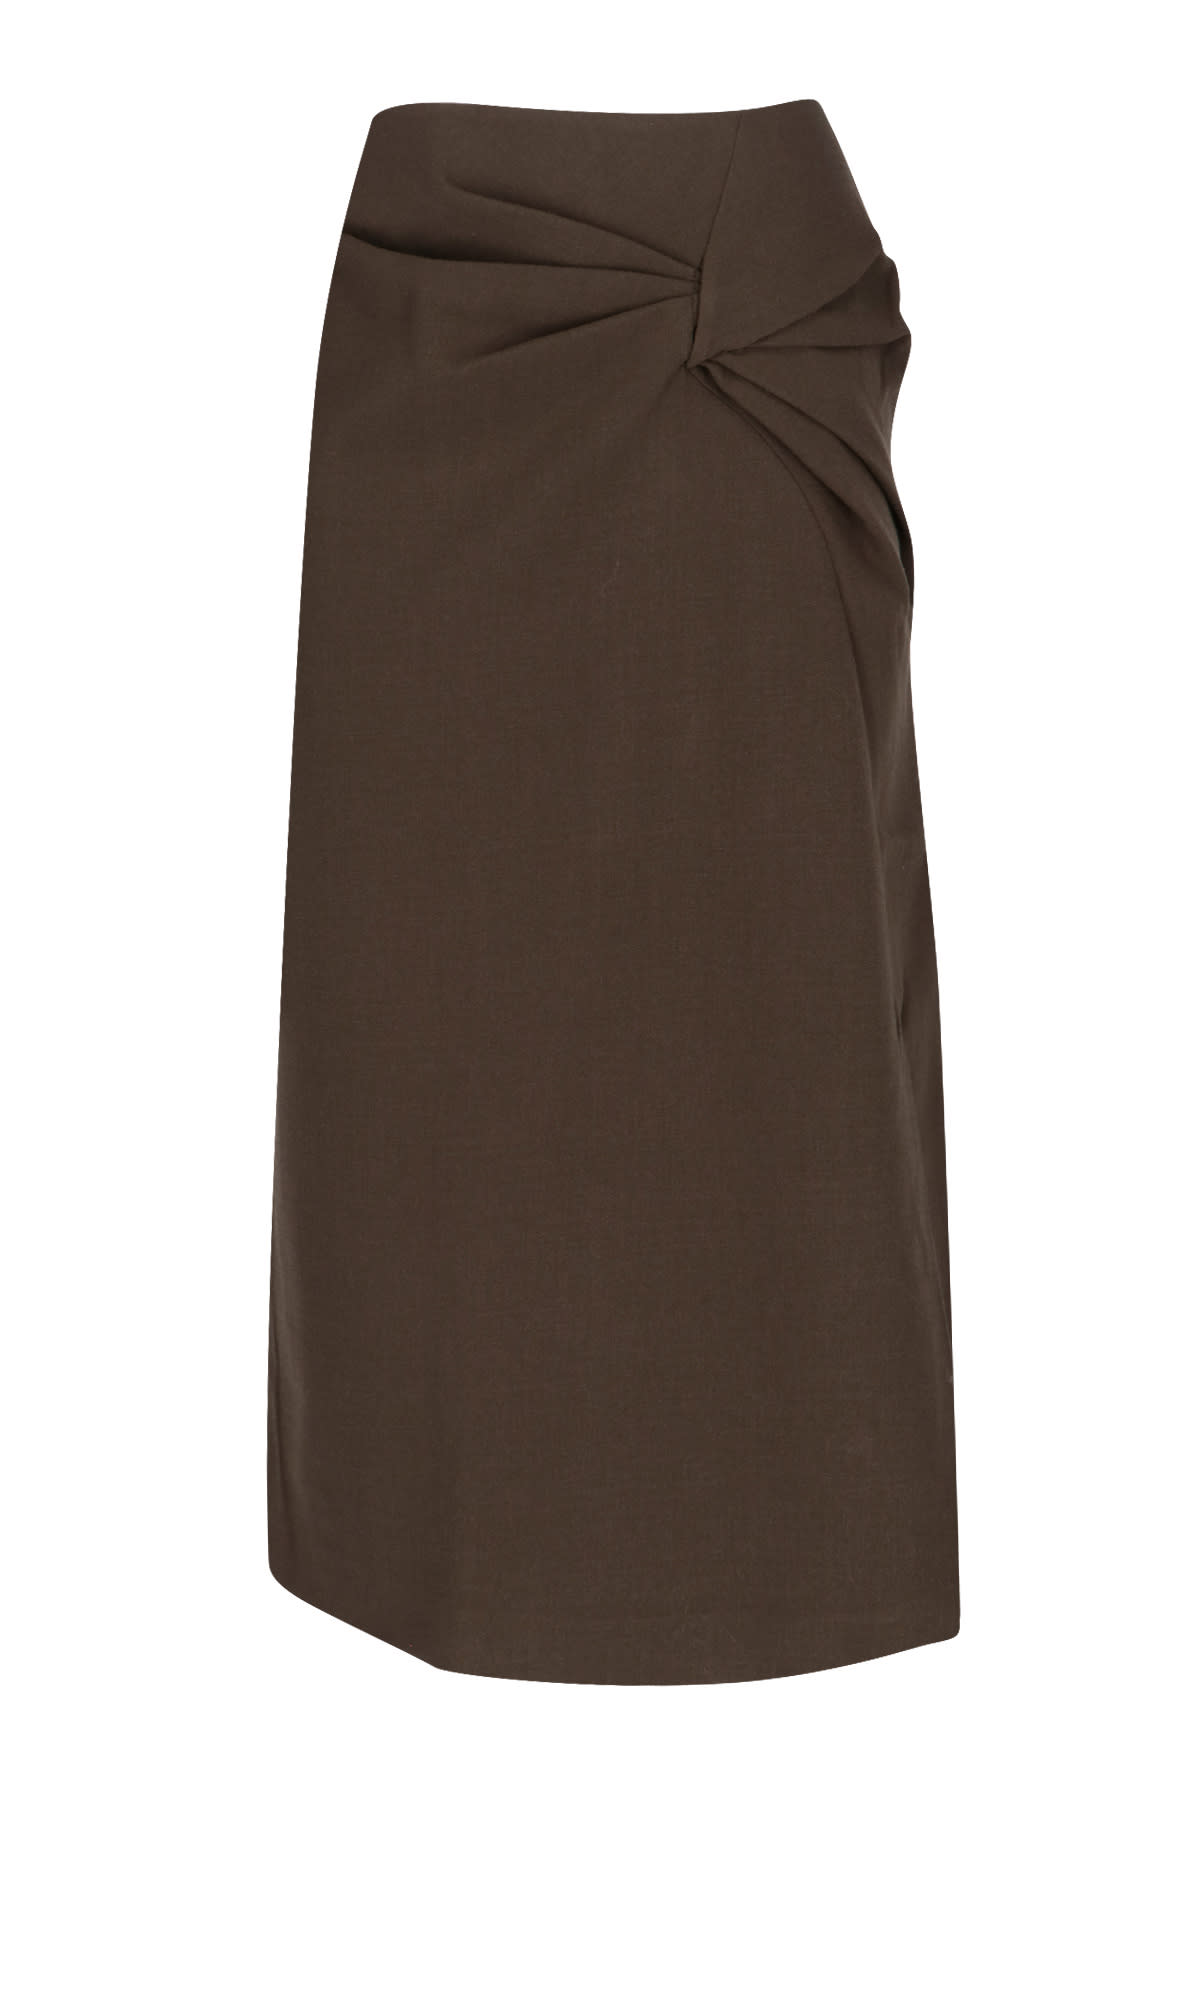 Rejina Pyo DRAPED DETAIL PENCIL SKIRT